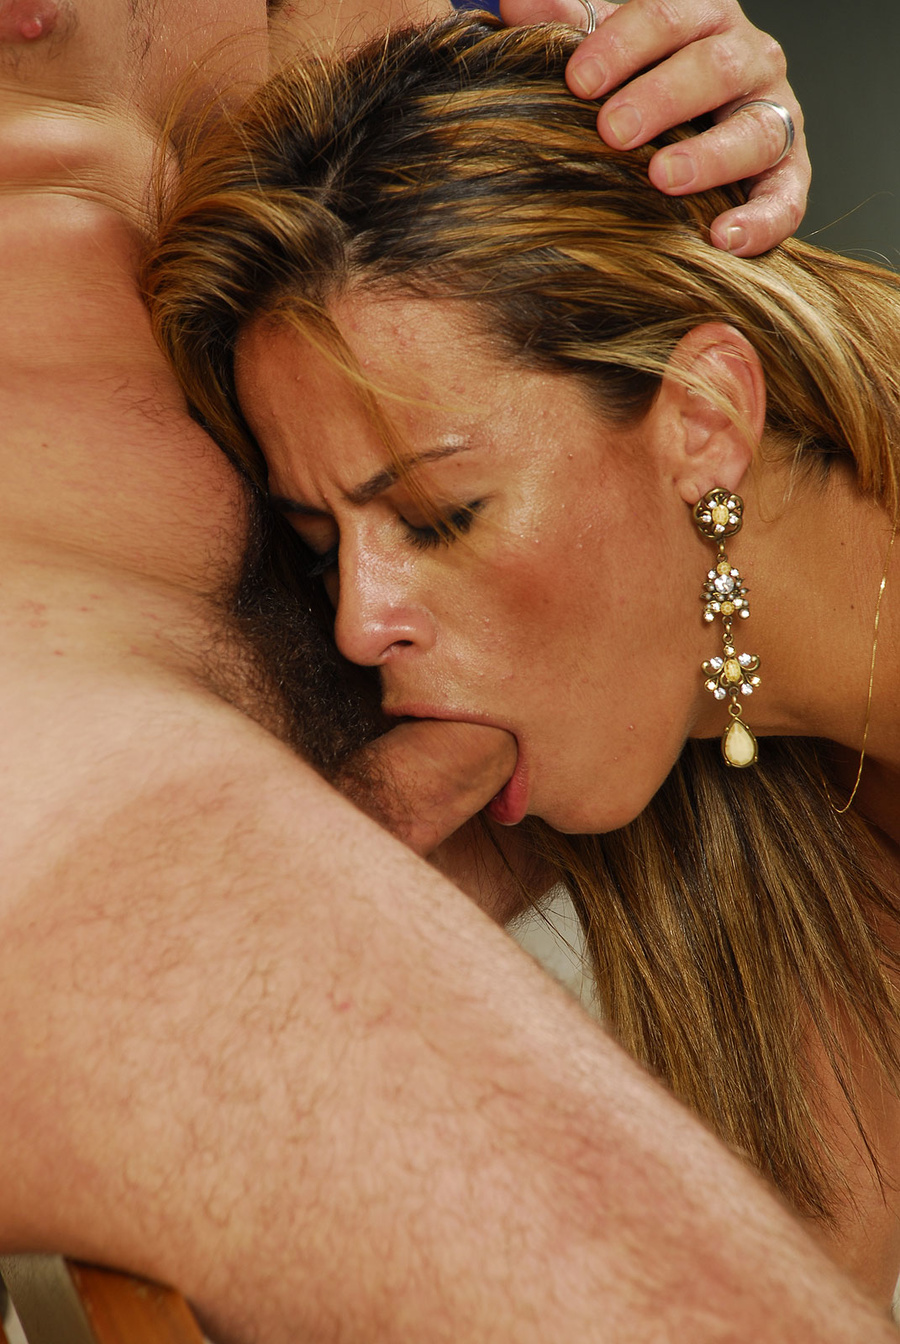 Great blowjob xxx movie